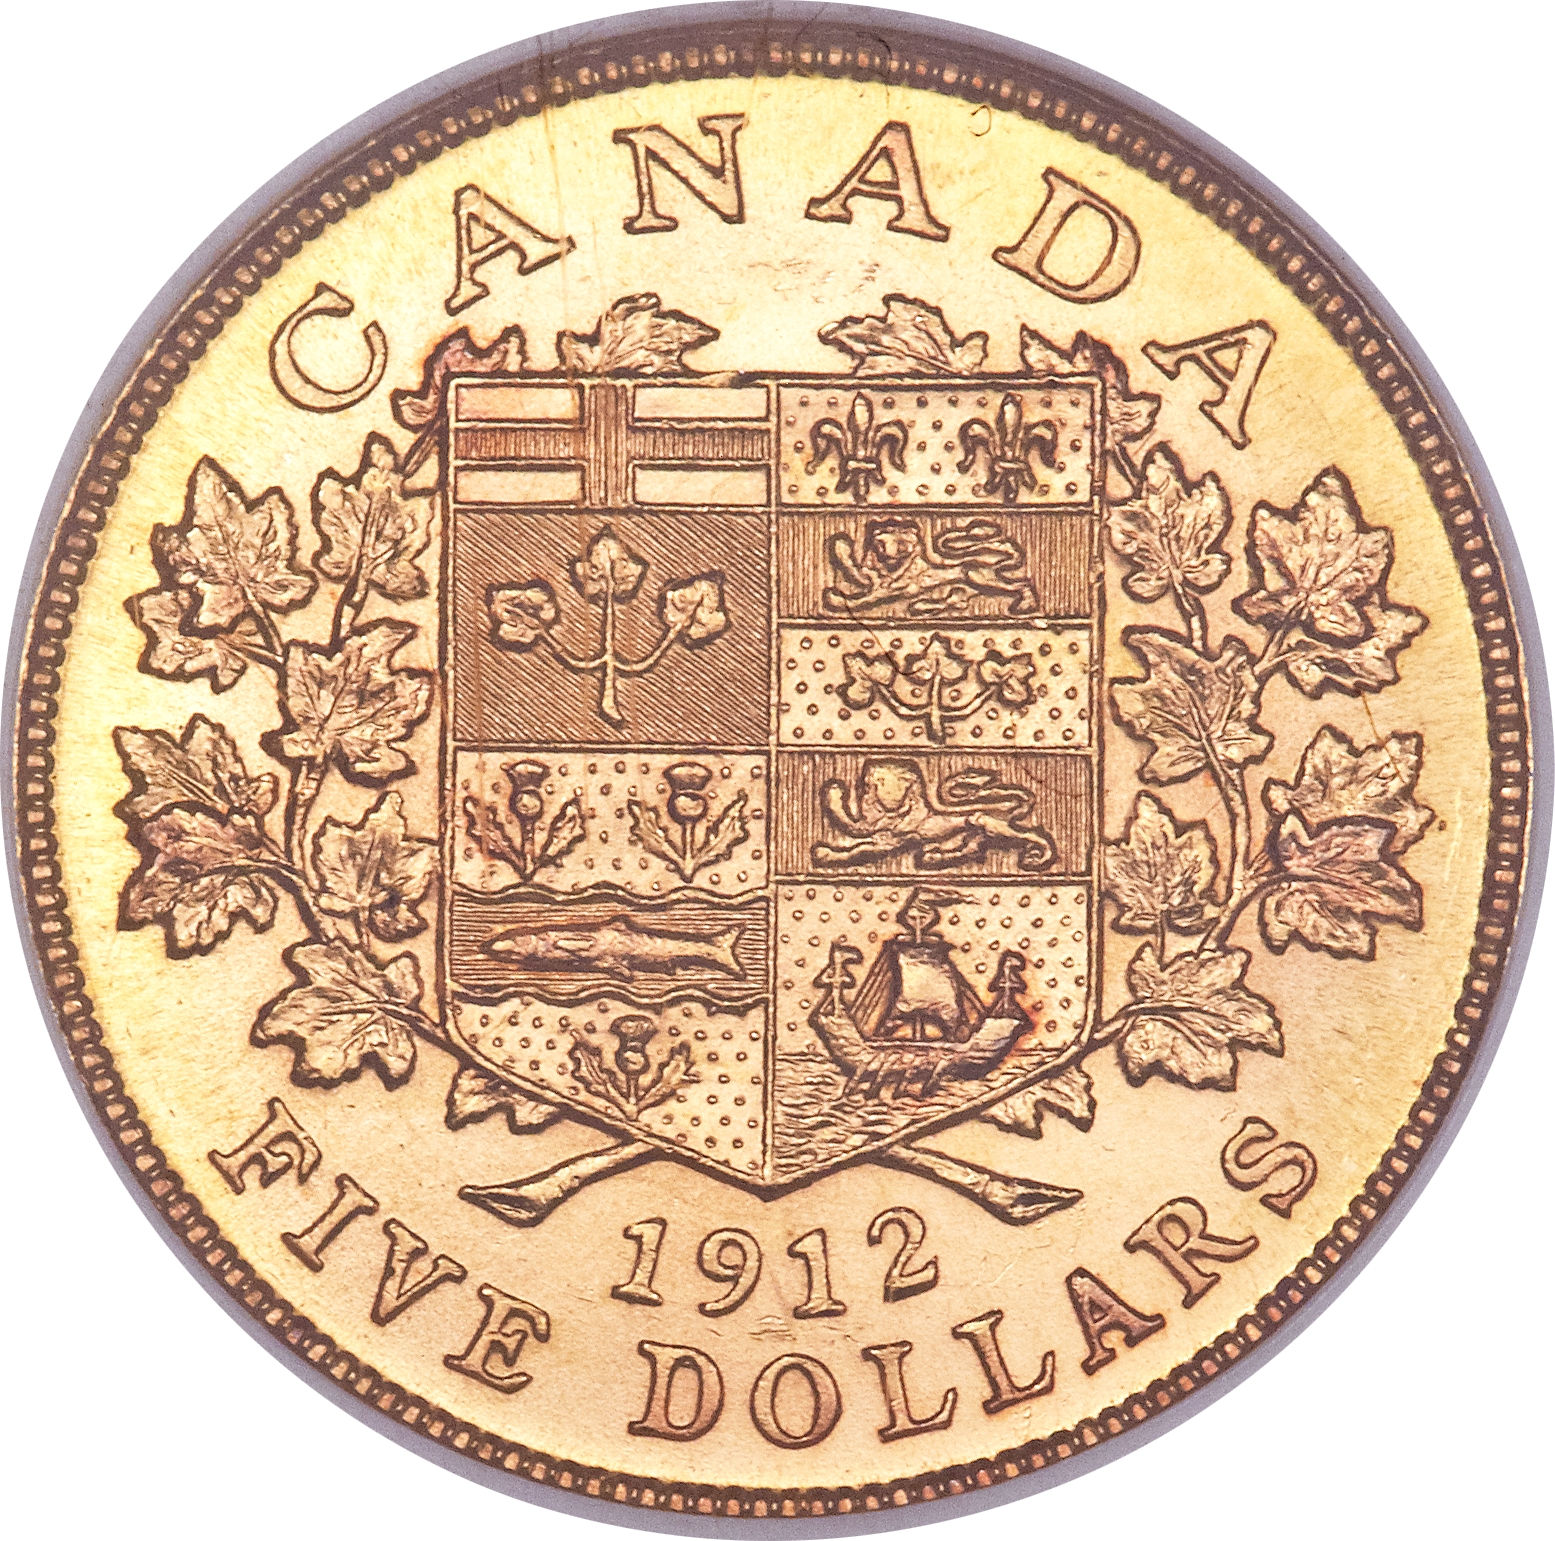 How Much Is A 1913 5 Dollar Gold Coin Worth